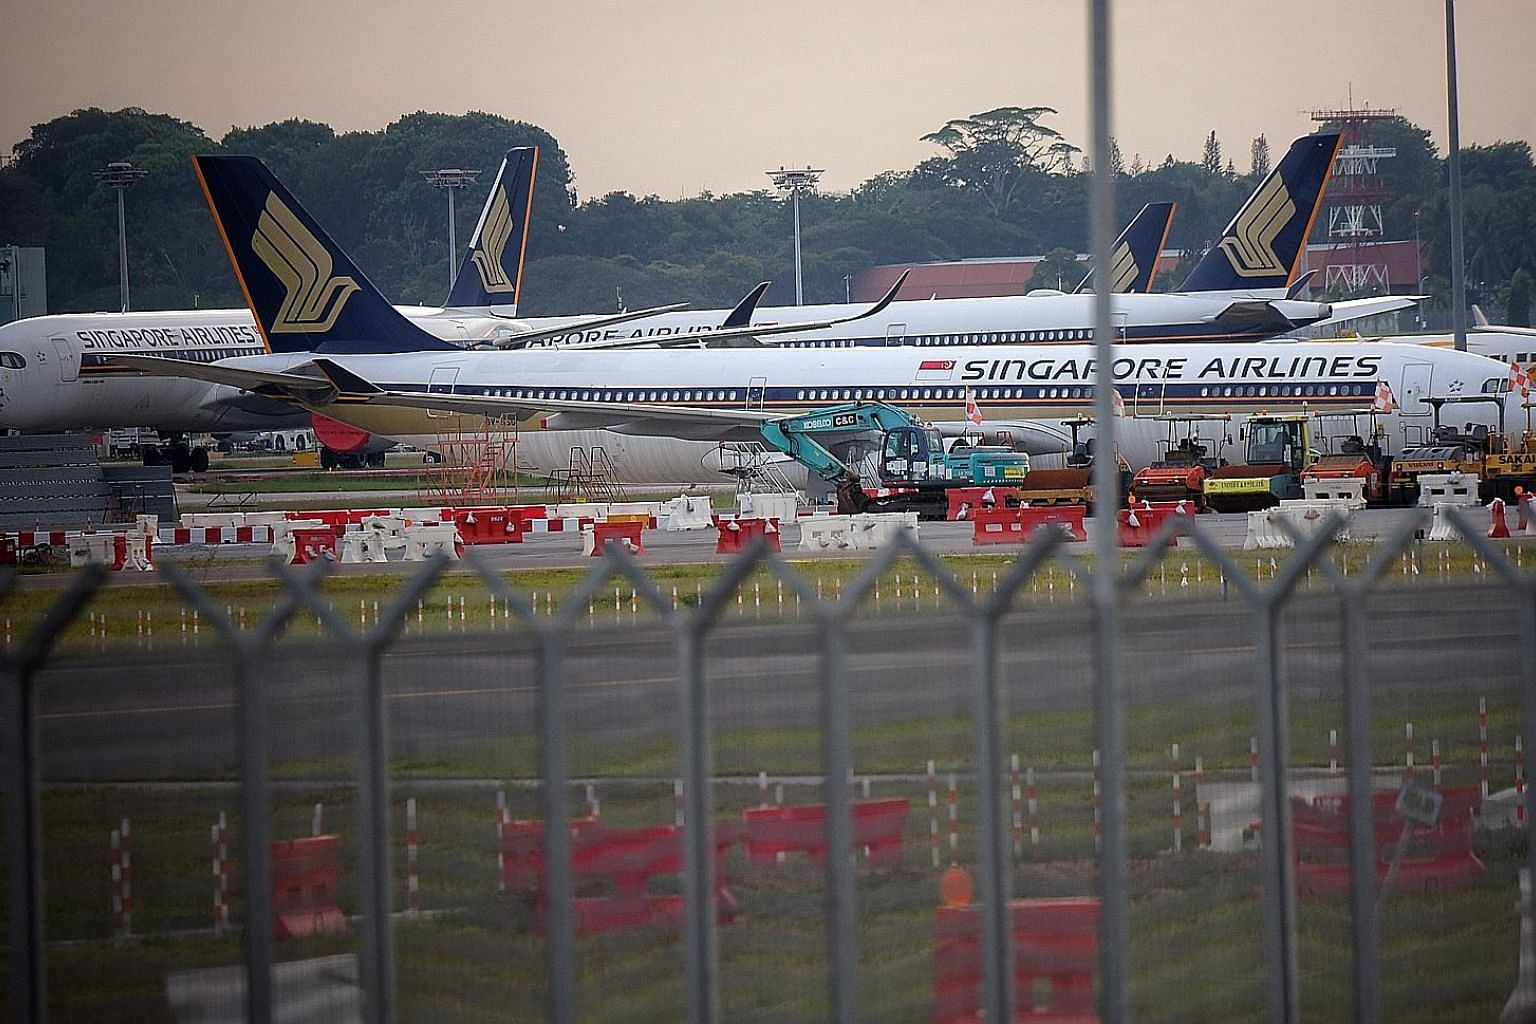 Singapore Airlines planes parked on the tarmac of Changi Airport last month as air travel demand evaporated amid travel restrictions and border controls imposed around the world to contain the spread of the coronavirus.